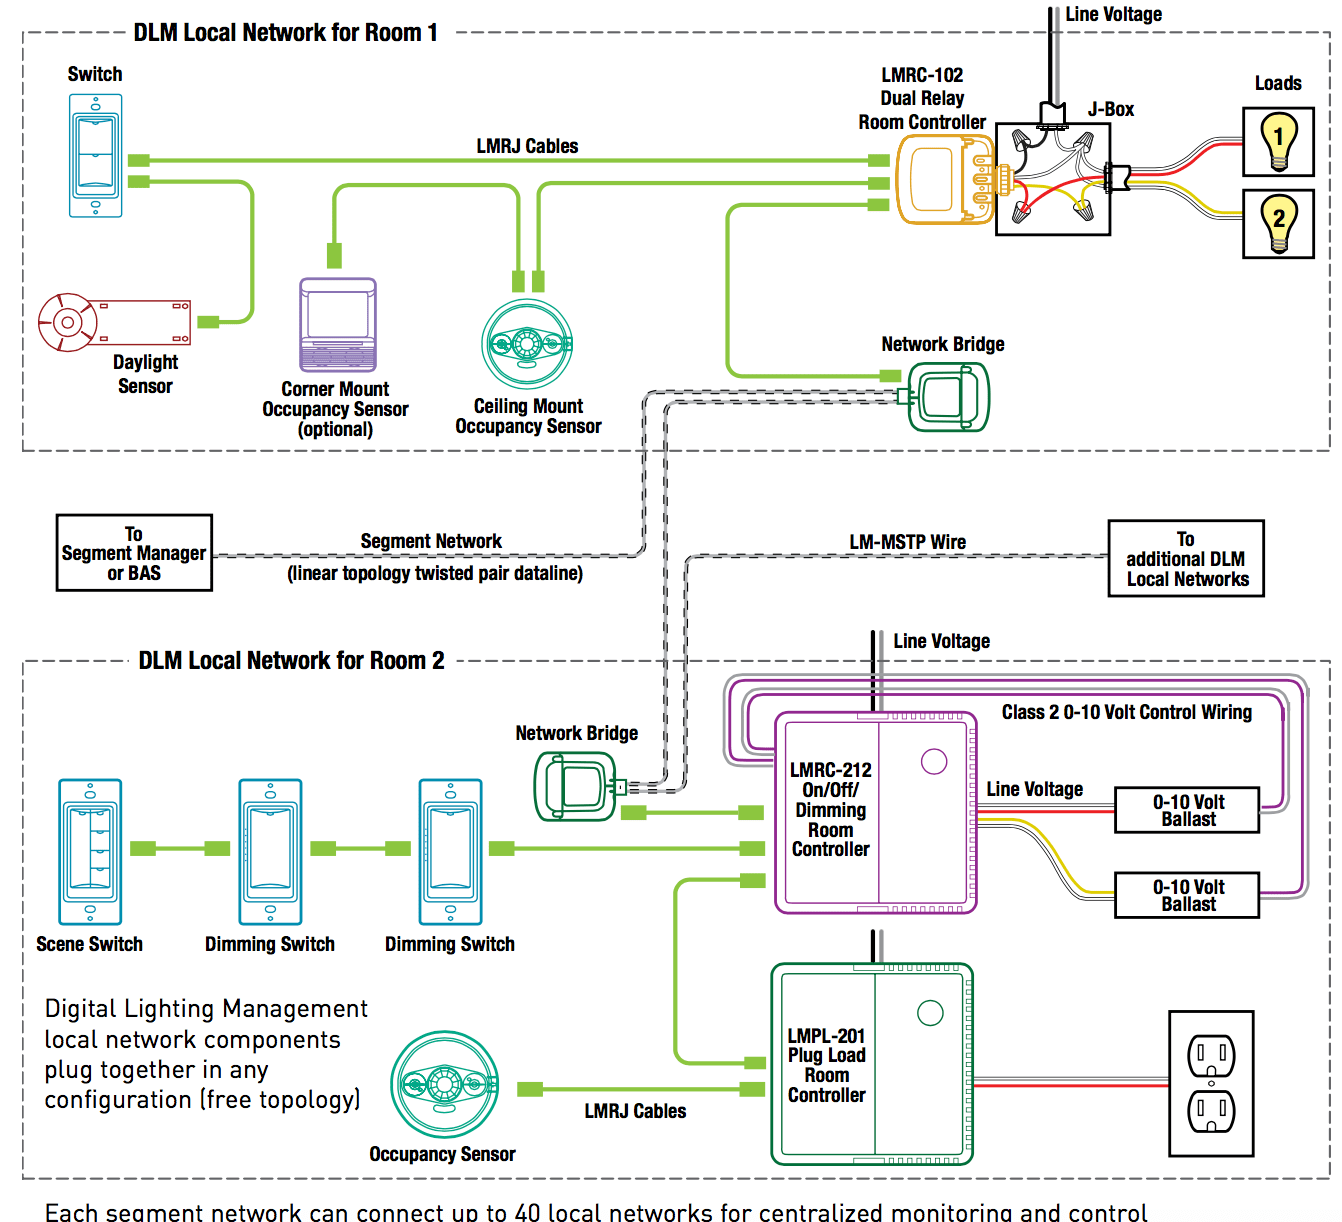 photocell lighting control wiring diagram draw the shear and moment diagrams for beam hibbeler cooper somurich